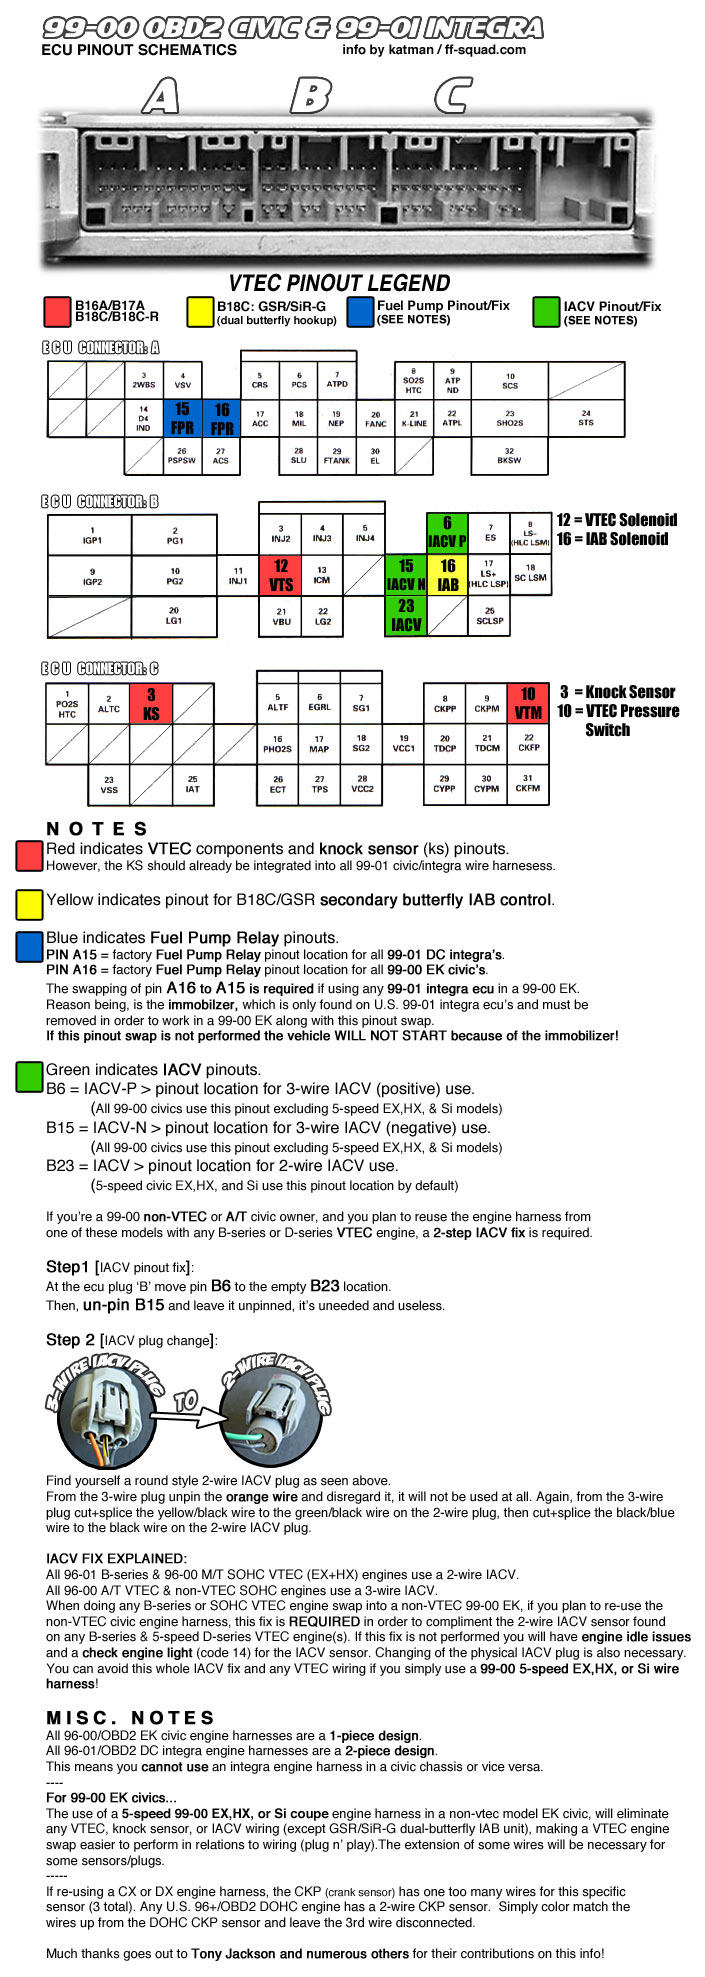 Gm Tbi Aldl Wiring Diagram furthermore Nissan Obd2 To Obd1 Wiring Diagram further Obd1 Wiring Diagram together with 1994 Ford Obd1 Wiring Diagram moreover Tank 150cc Scooter Wiring Diagram 2005. on obd1 gmc c3500 wiring diagram